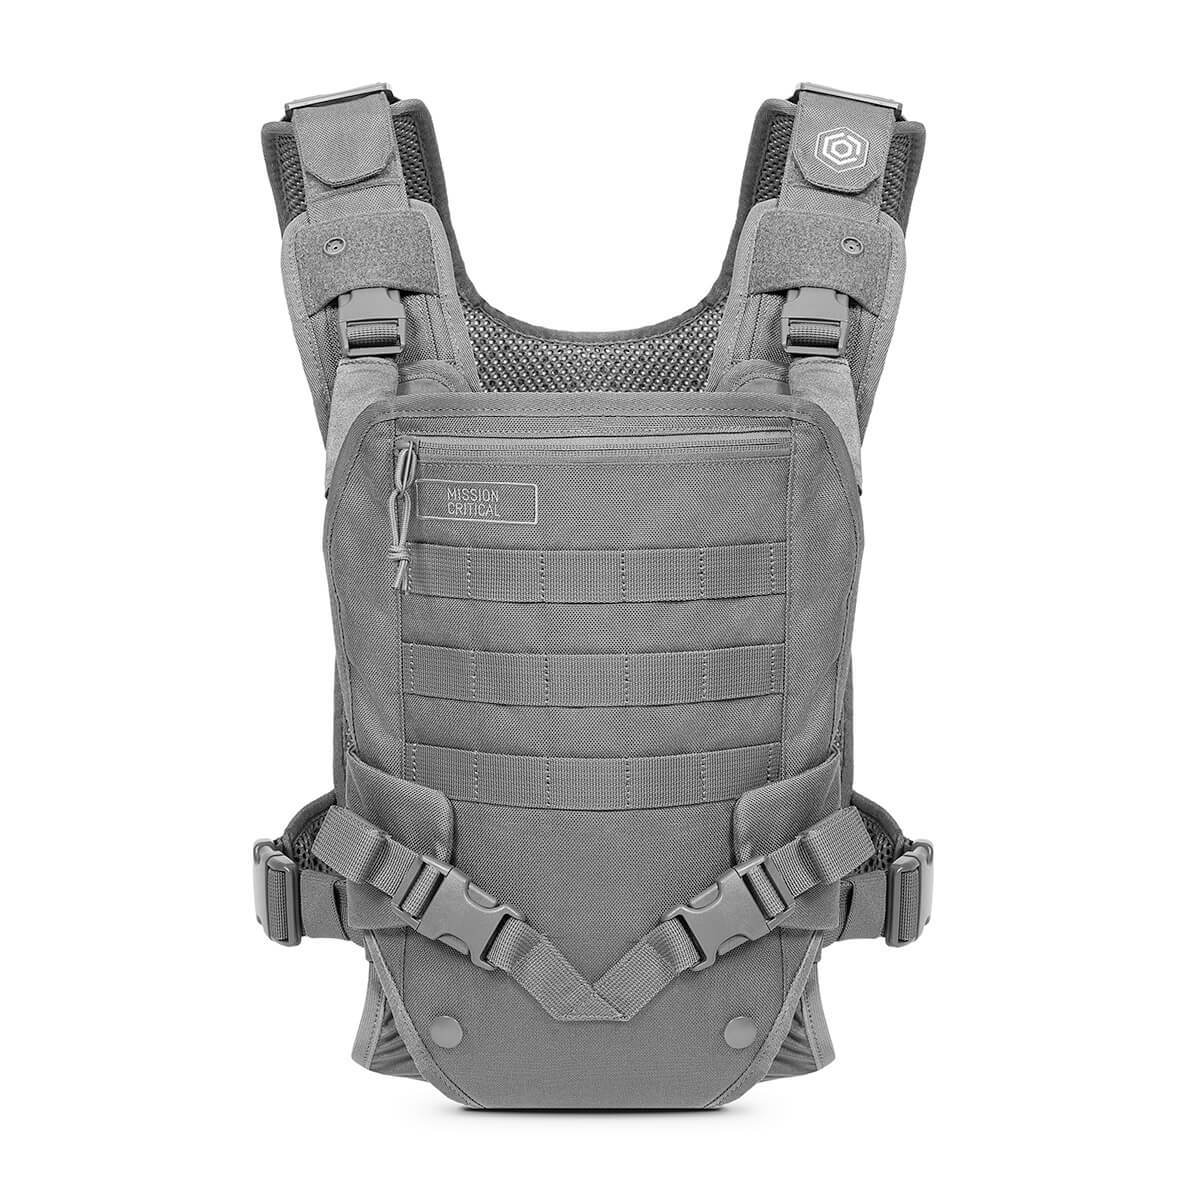 S.01 Action Baby Carrier - Access Kit